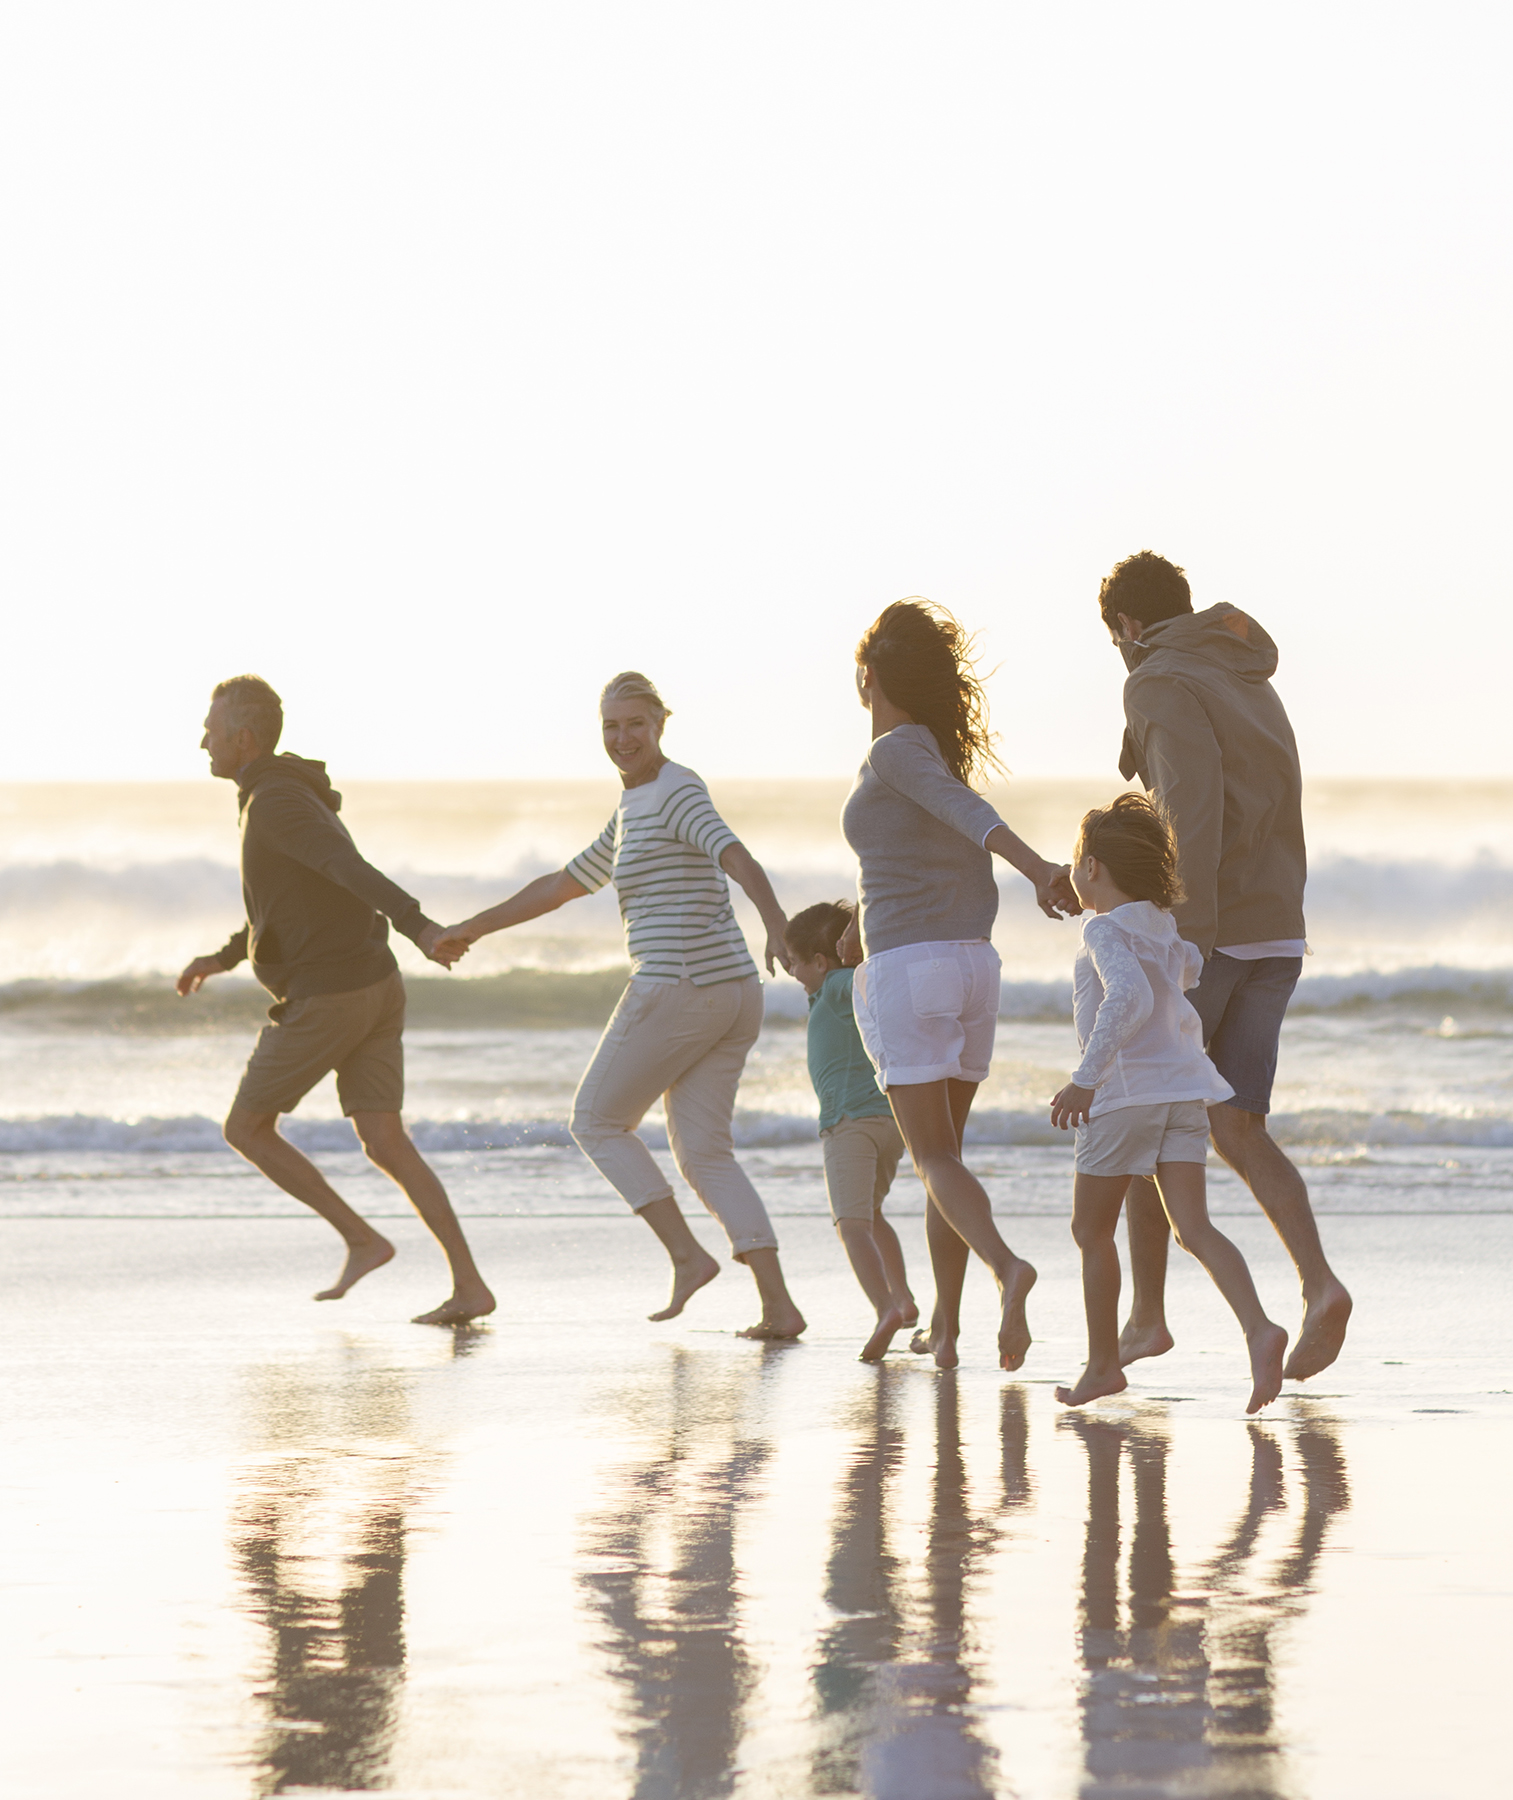 Extended family running on beach holding hands